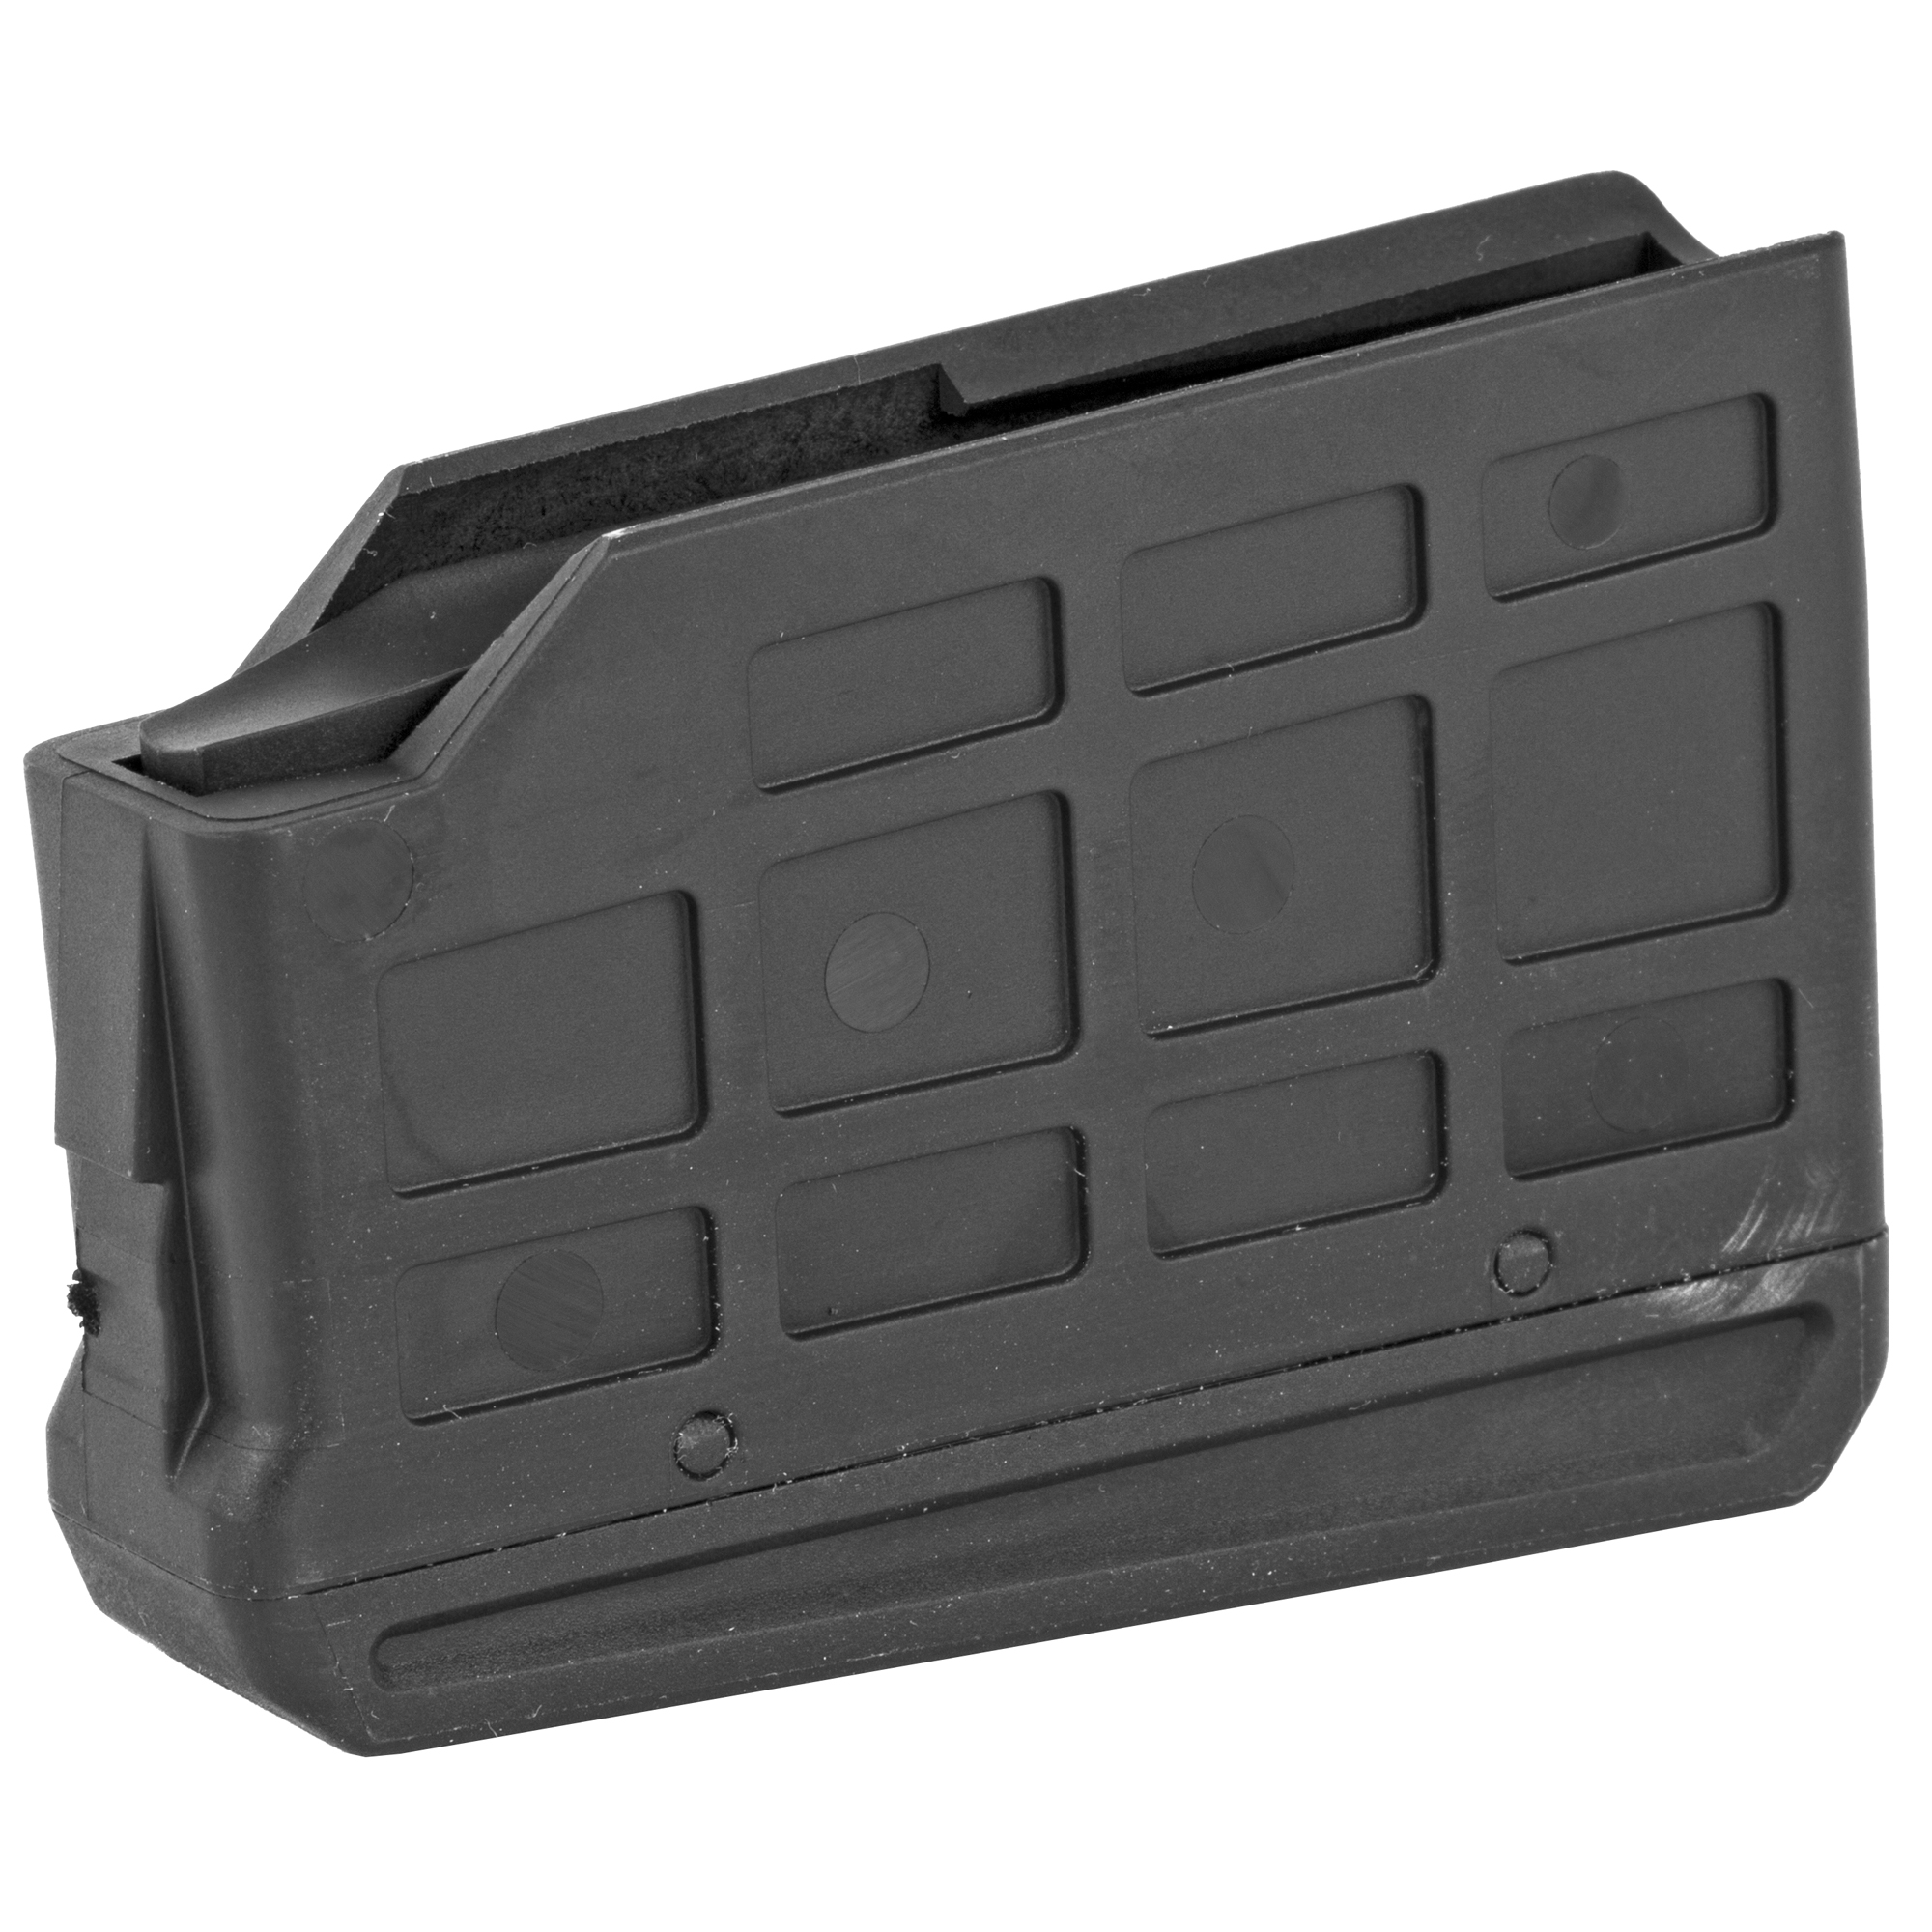 """The XPR's detachable box magazine is constructed of a light yet rugged polymer and securely latches at both the front and rear for added security and to endure feeding reliability. The magazine is a slick and slim single stack design that feeds cartridges in a straight line right into the chamber. Nothing could be more straight-forward. The XPR's magazine capacity is three cartridges in both magnum and standard calibers. Because they are so slim"""" additional loaded XPR magazines can be easily carried in your pocket or pack for a fast reload."""